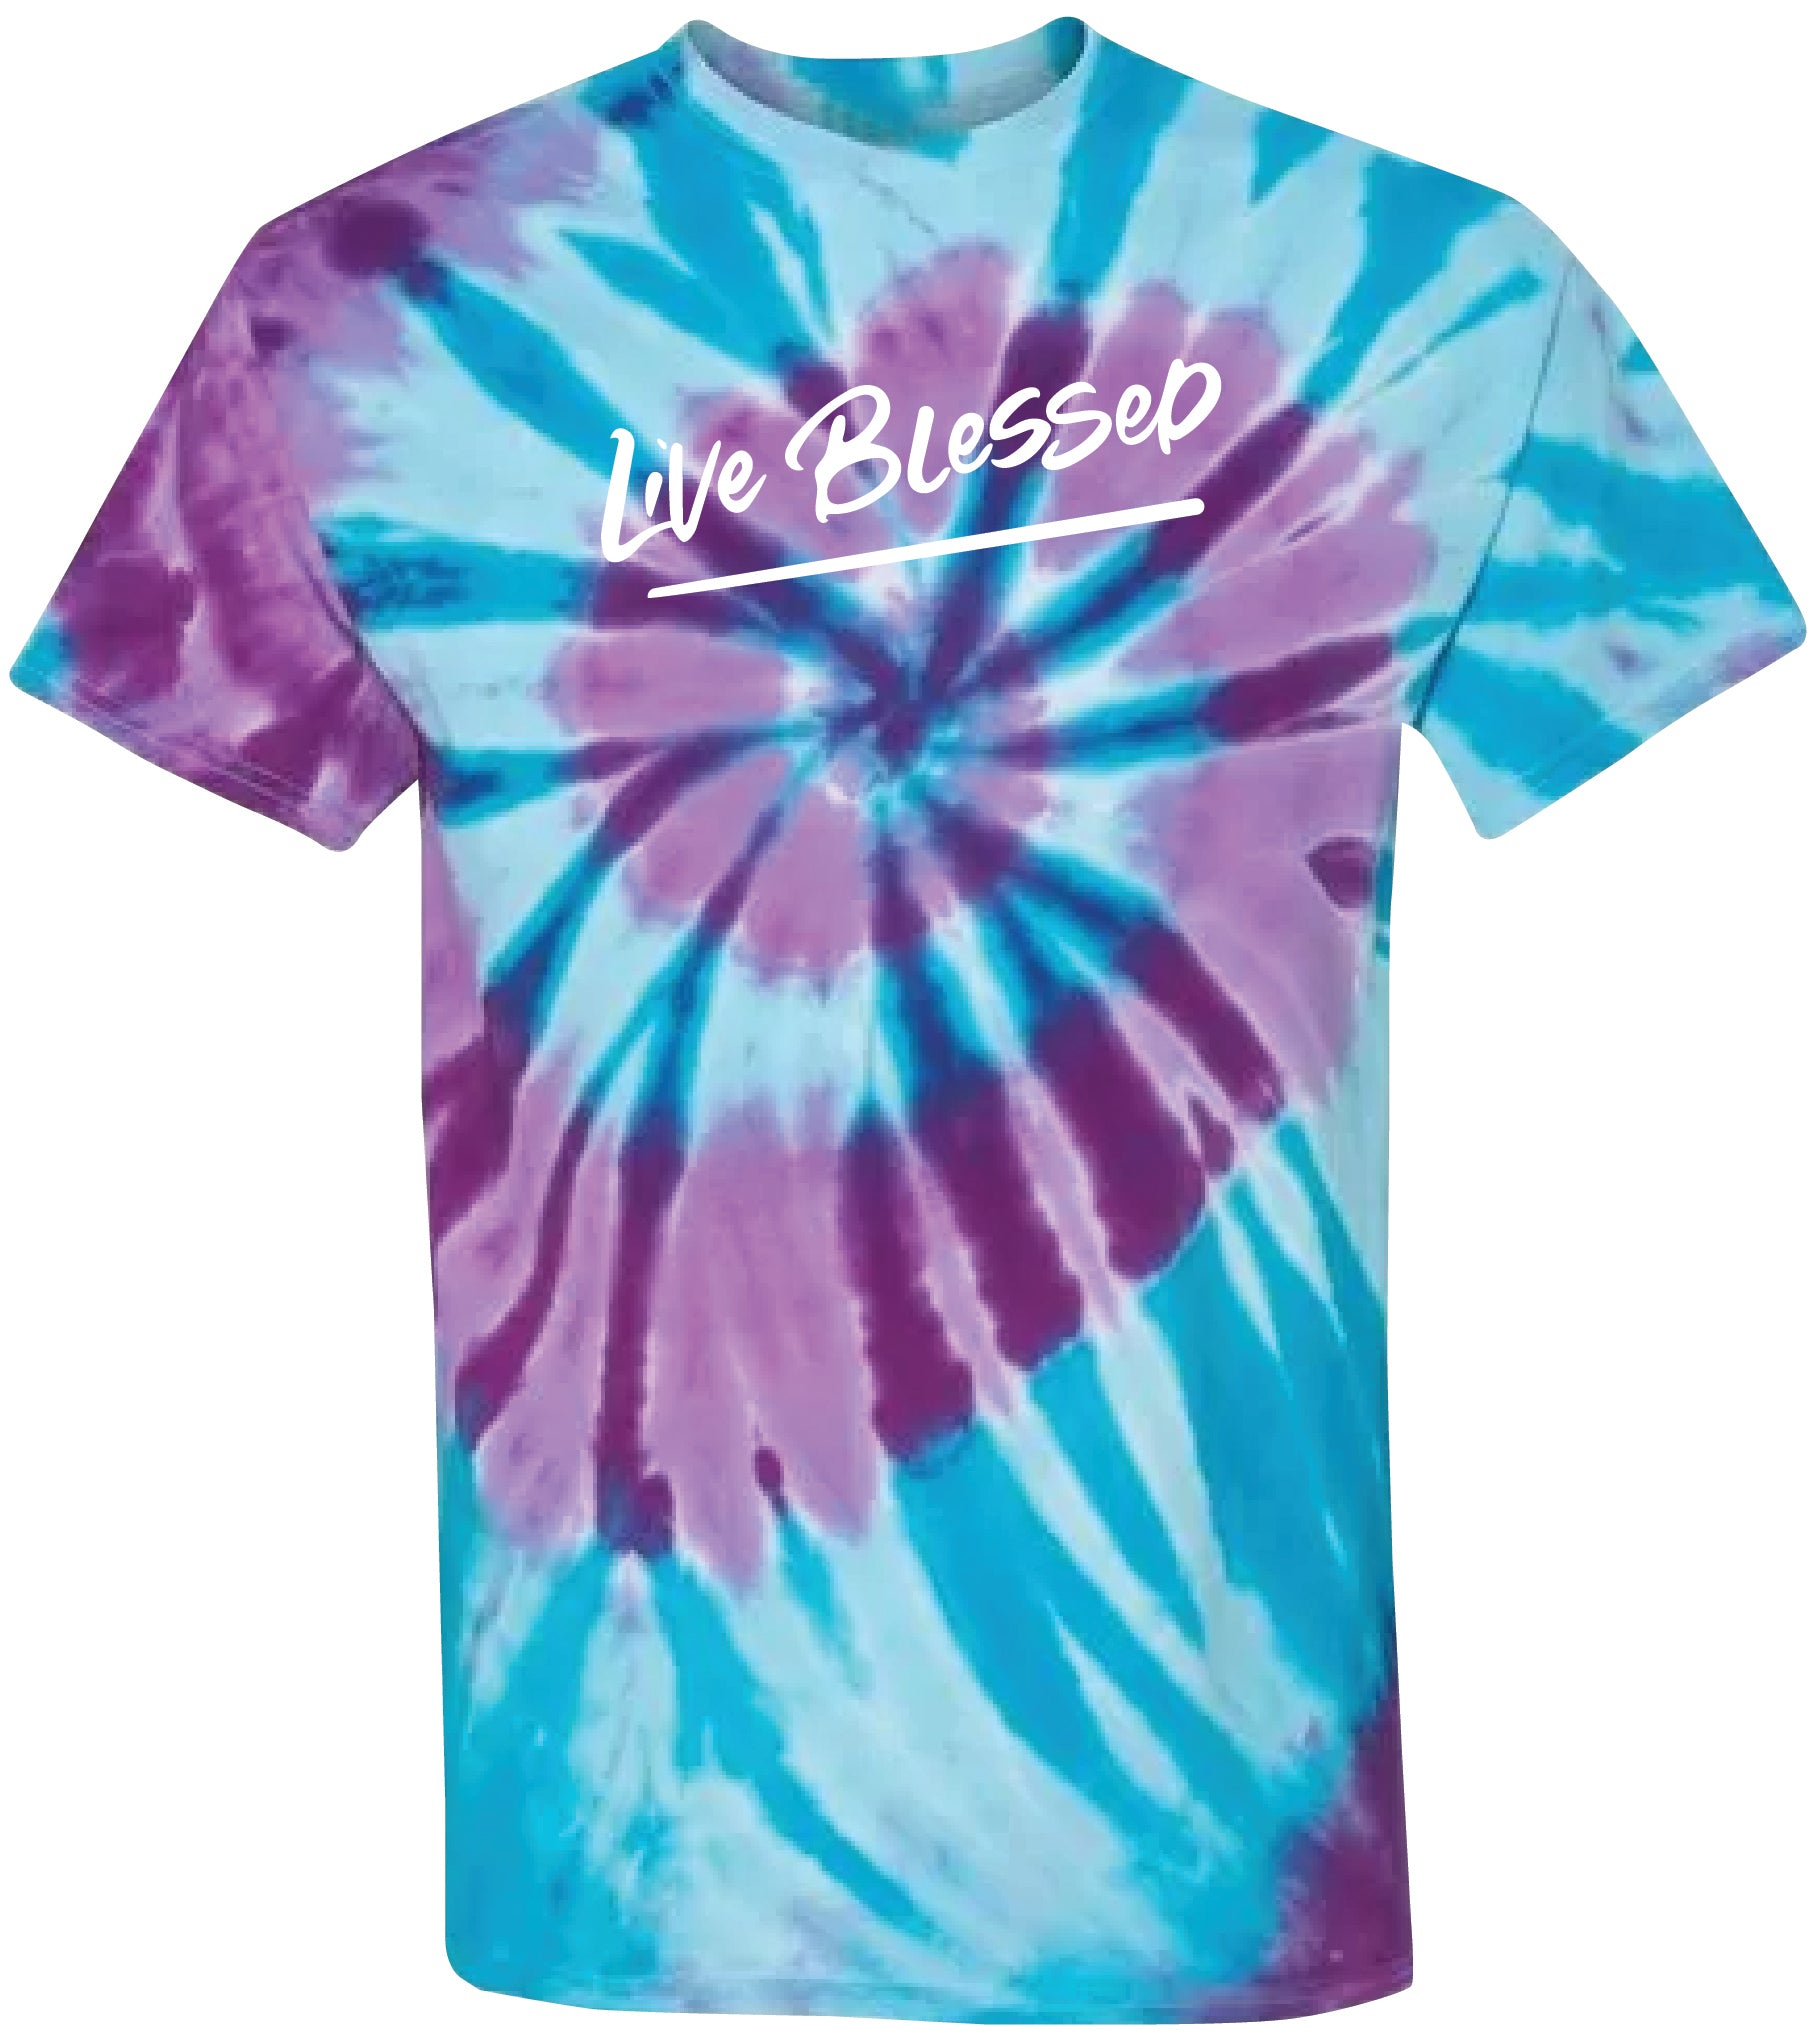 WOMEN'S LIGHT BLUE/PURPLE LIVE BLESSED TIE DYE TEE